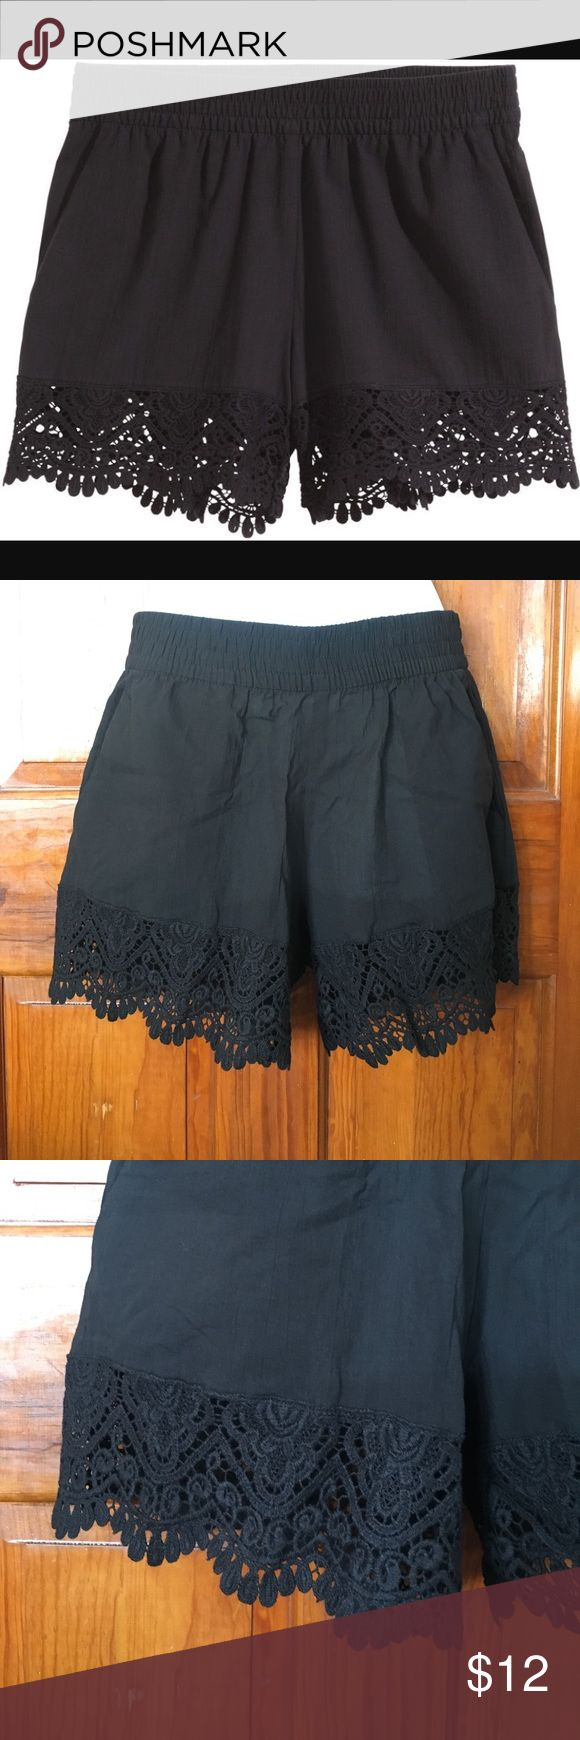 H&M Crochet Lace Trim Shorts Size 6/36 Brand New with Tags. Flirty shorts great for summer months. H&M Shorts